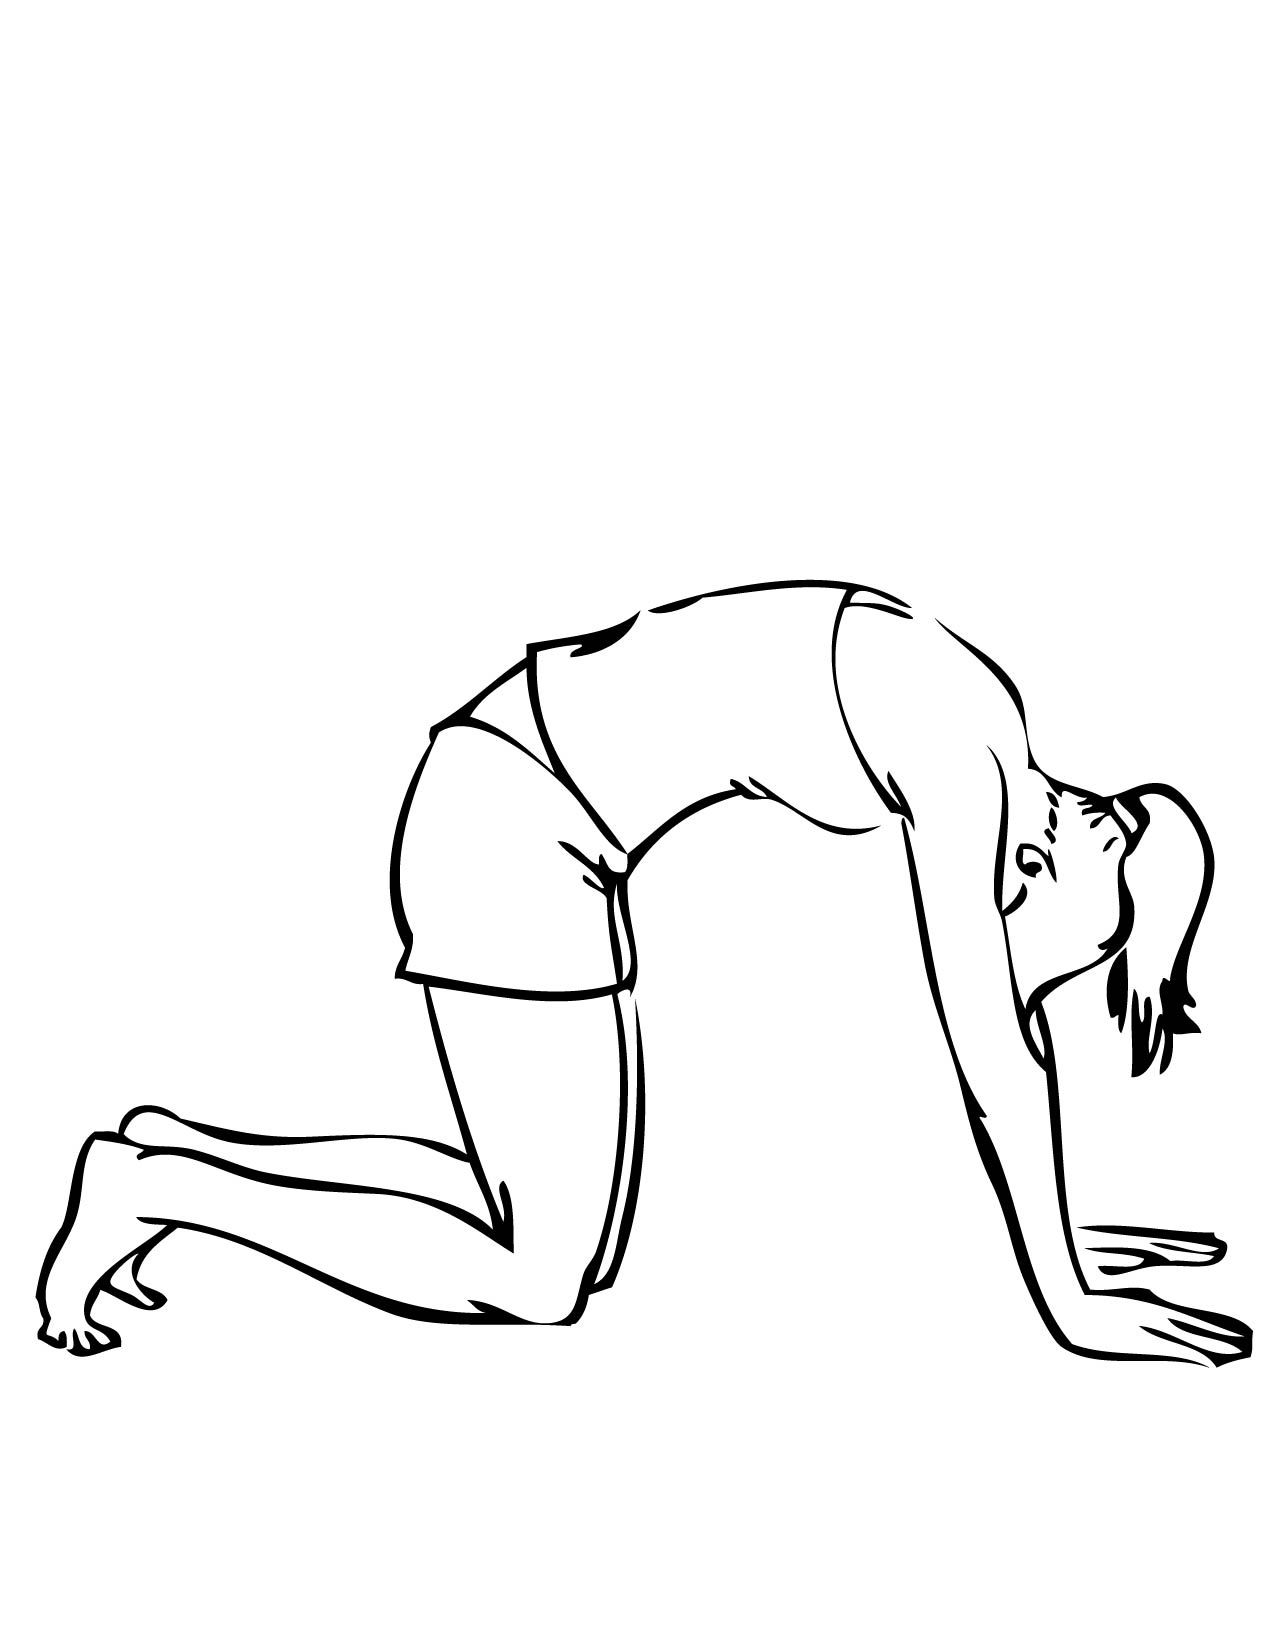 Cat Pose Yoga Coloring Book Coloring Pages For Kids Yoga For Kids [ 1650 x 1275 Pixel ]